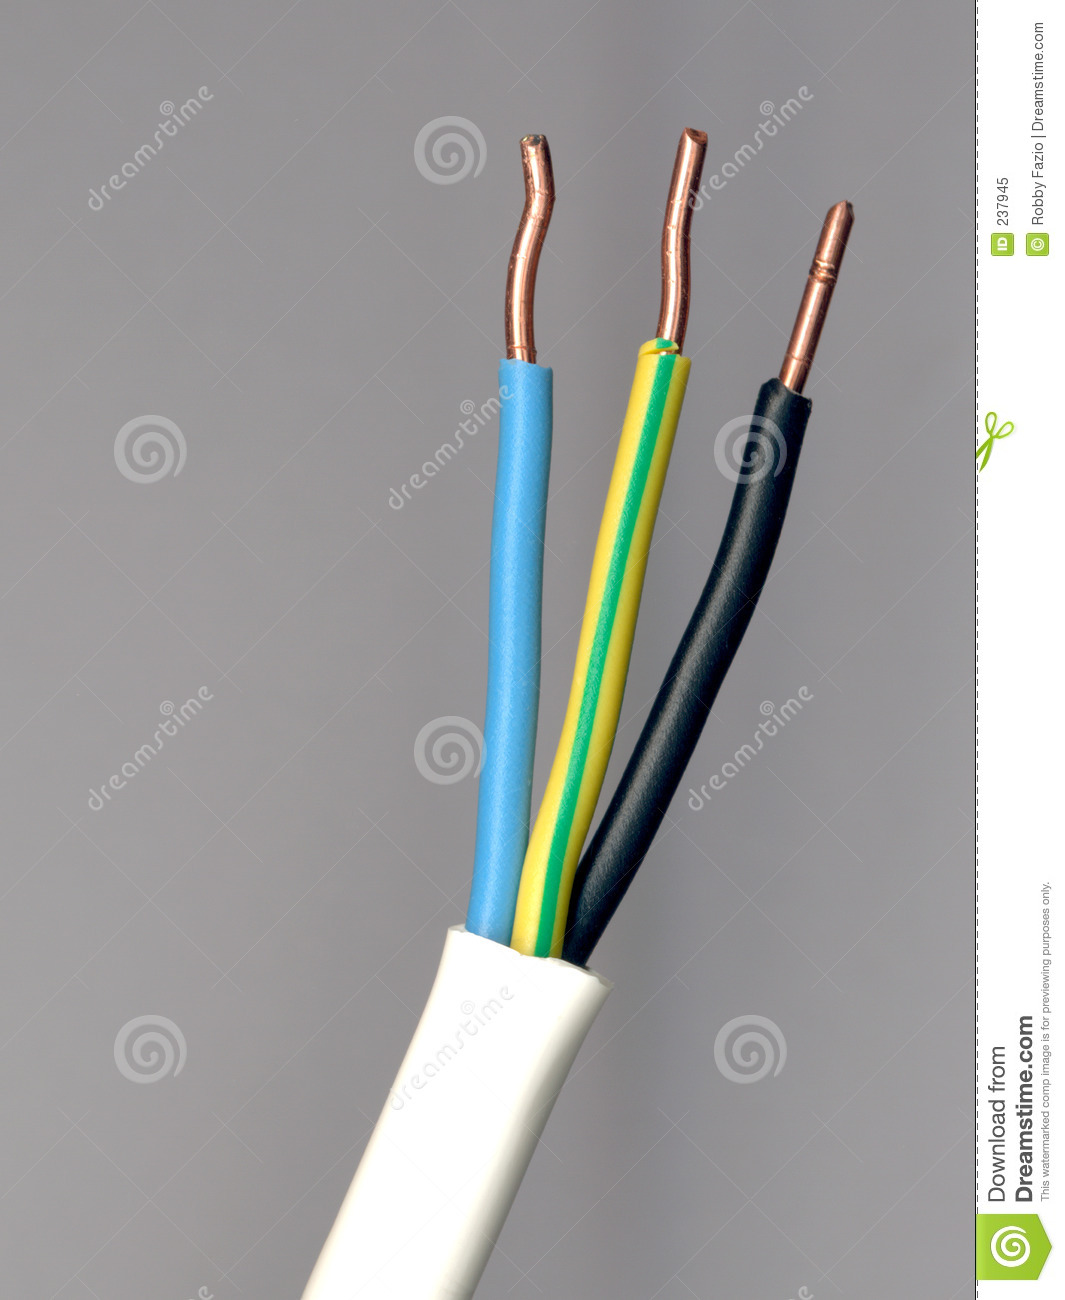 AC DC Power Wires stock image  Image of acdc  cable  power   237945 Download AC DC Power Wires stock image  Image of acdc  cable  power